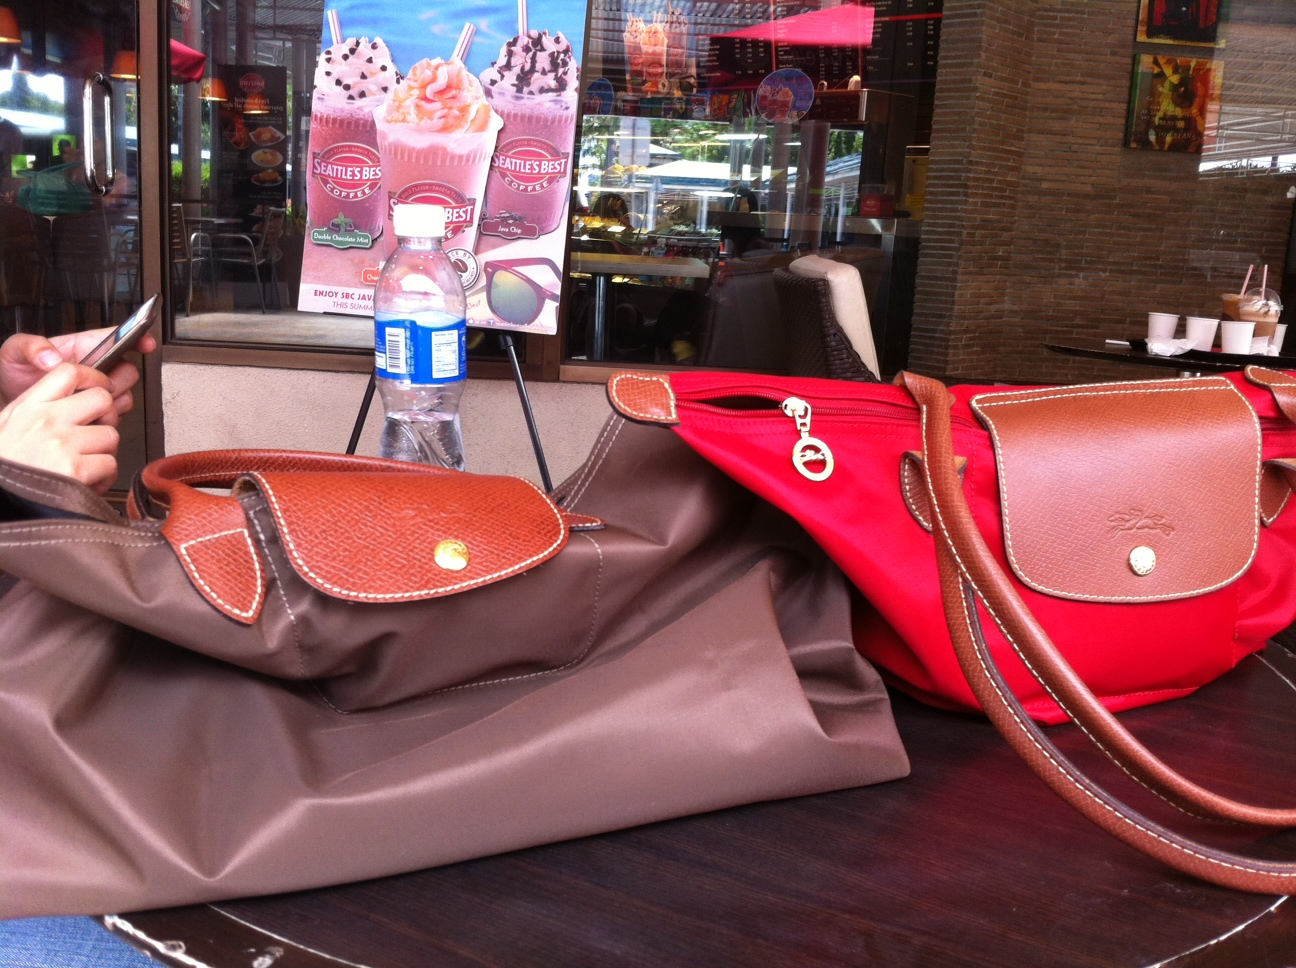 The two Longchamp bags look the same at first glance, but the plastic  material feels different - the brown bag feels slightly coarser, more  durable.